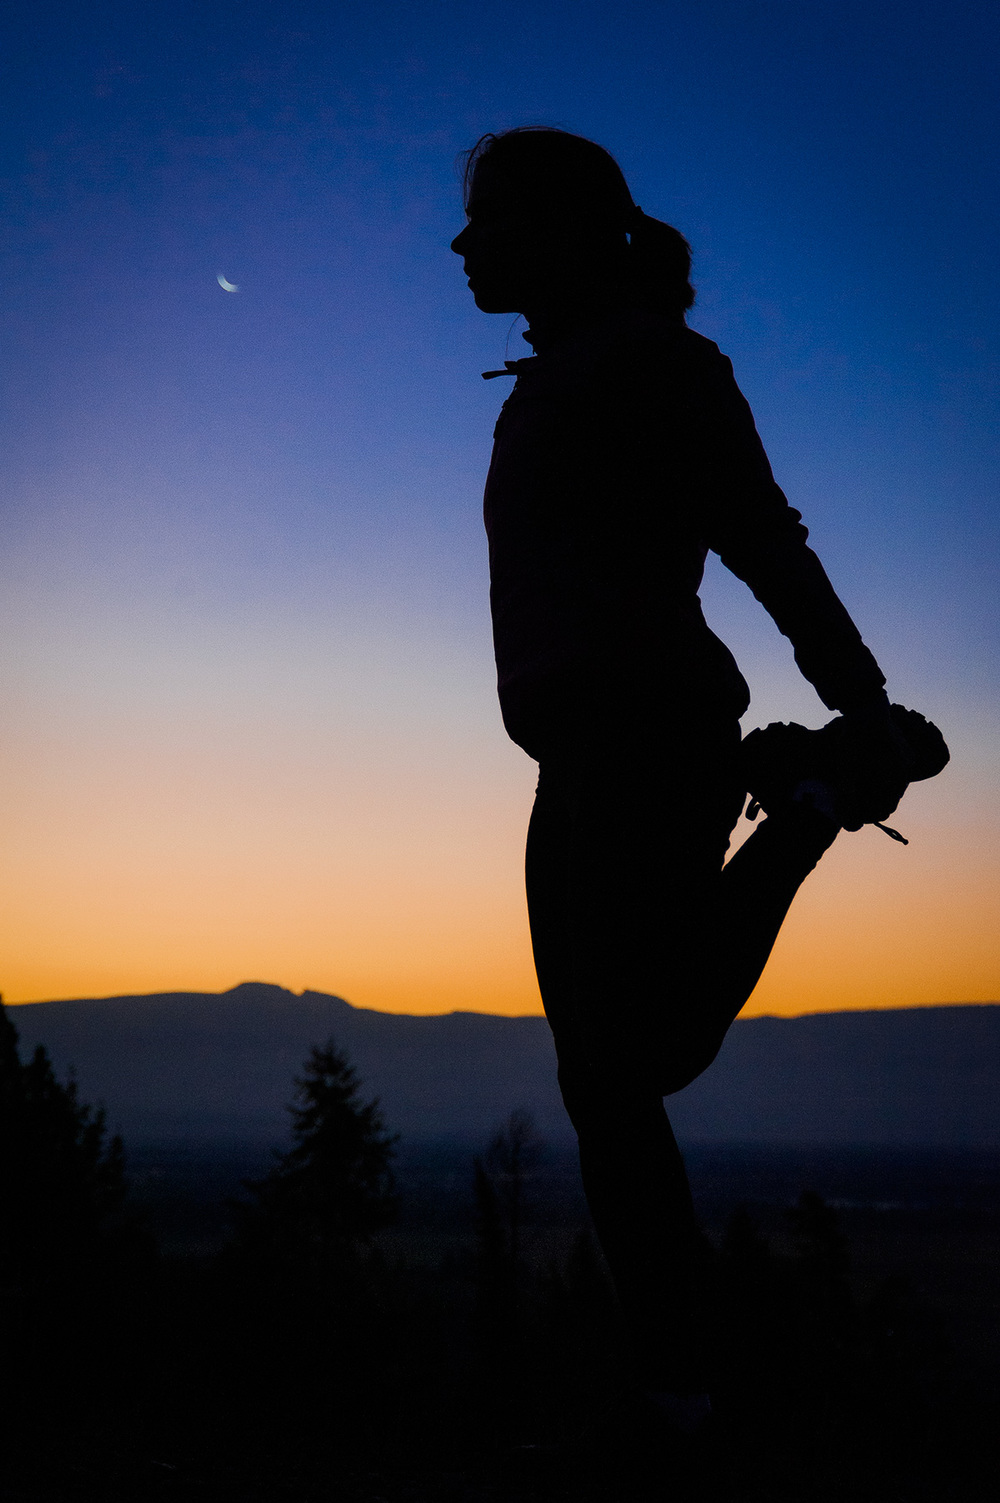 North Face athlete Kit Deslauriers stretching at sunrise in Jackson, WY